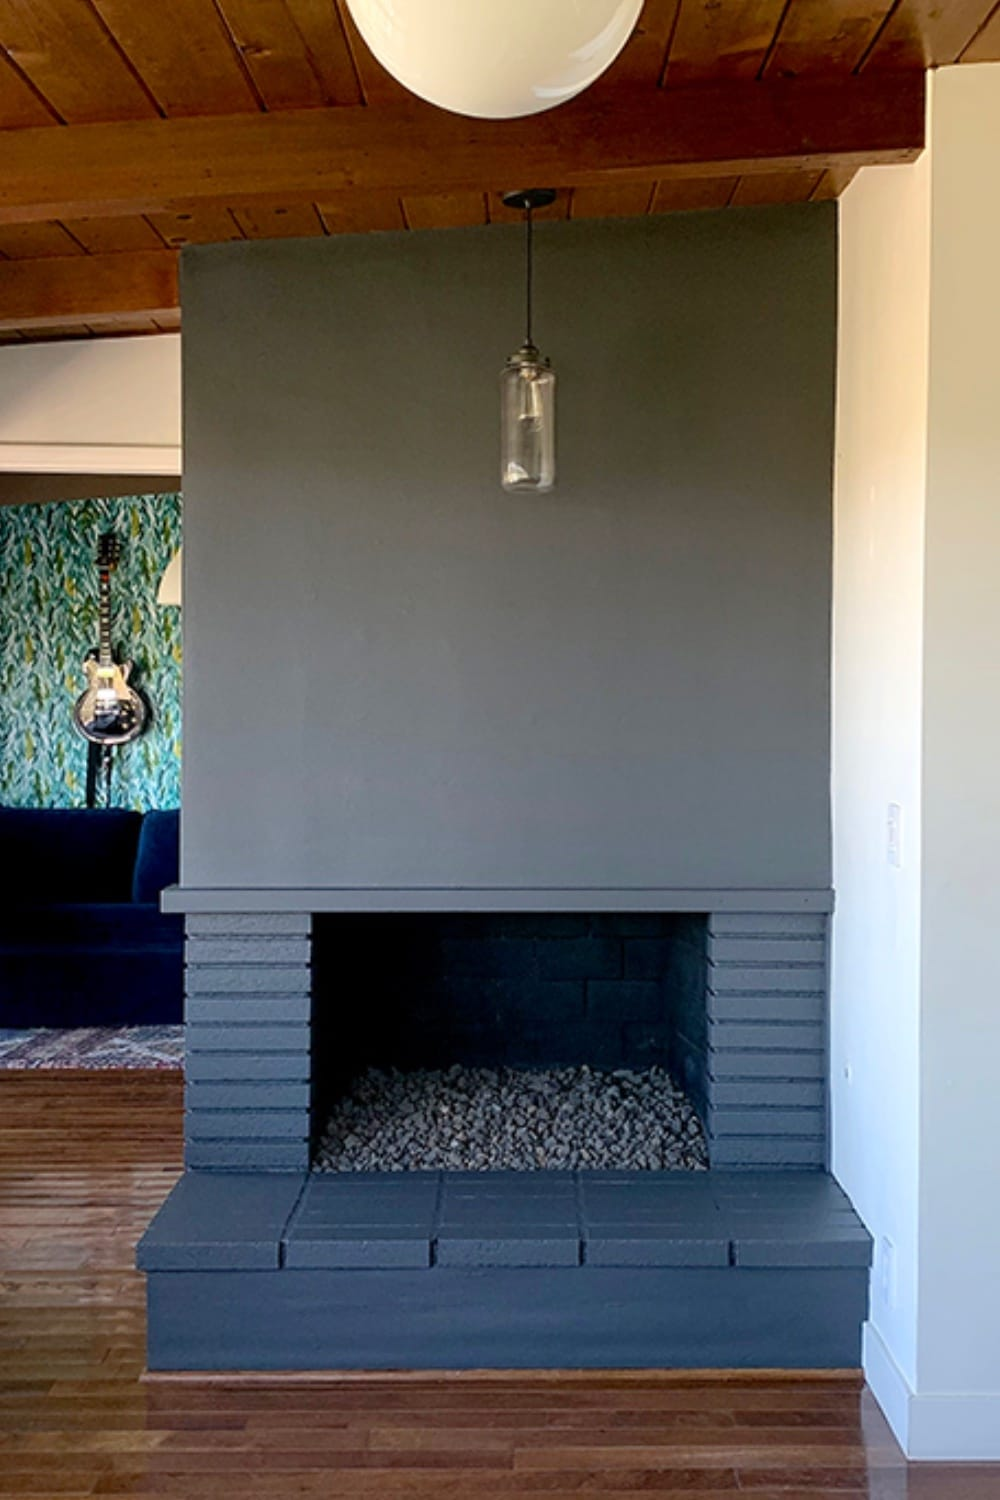 How to Paint a Fireplace: From Vintage to Elegant 14